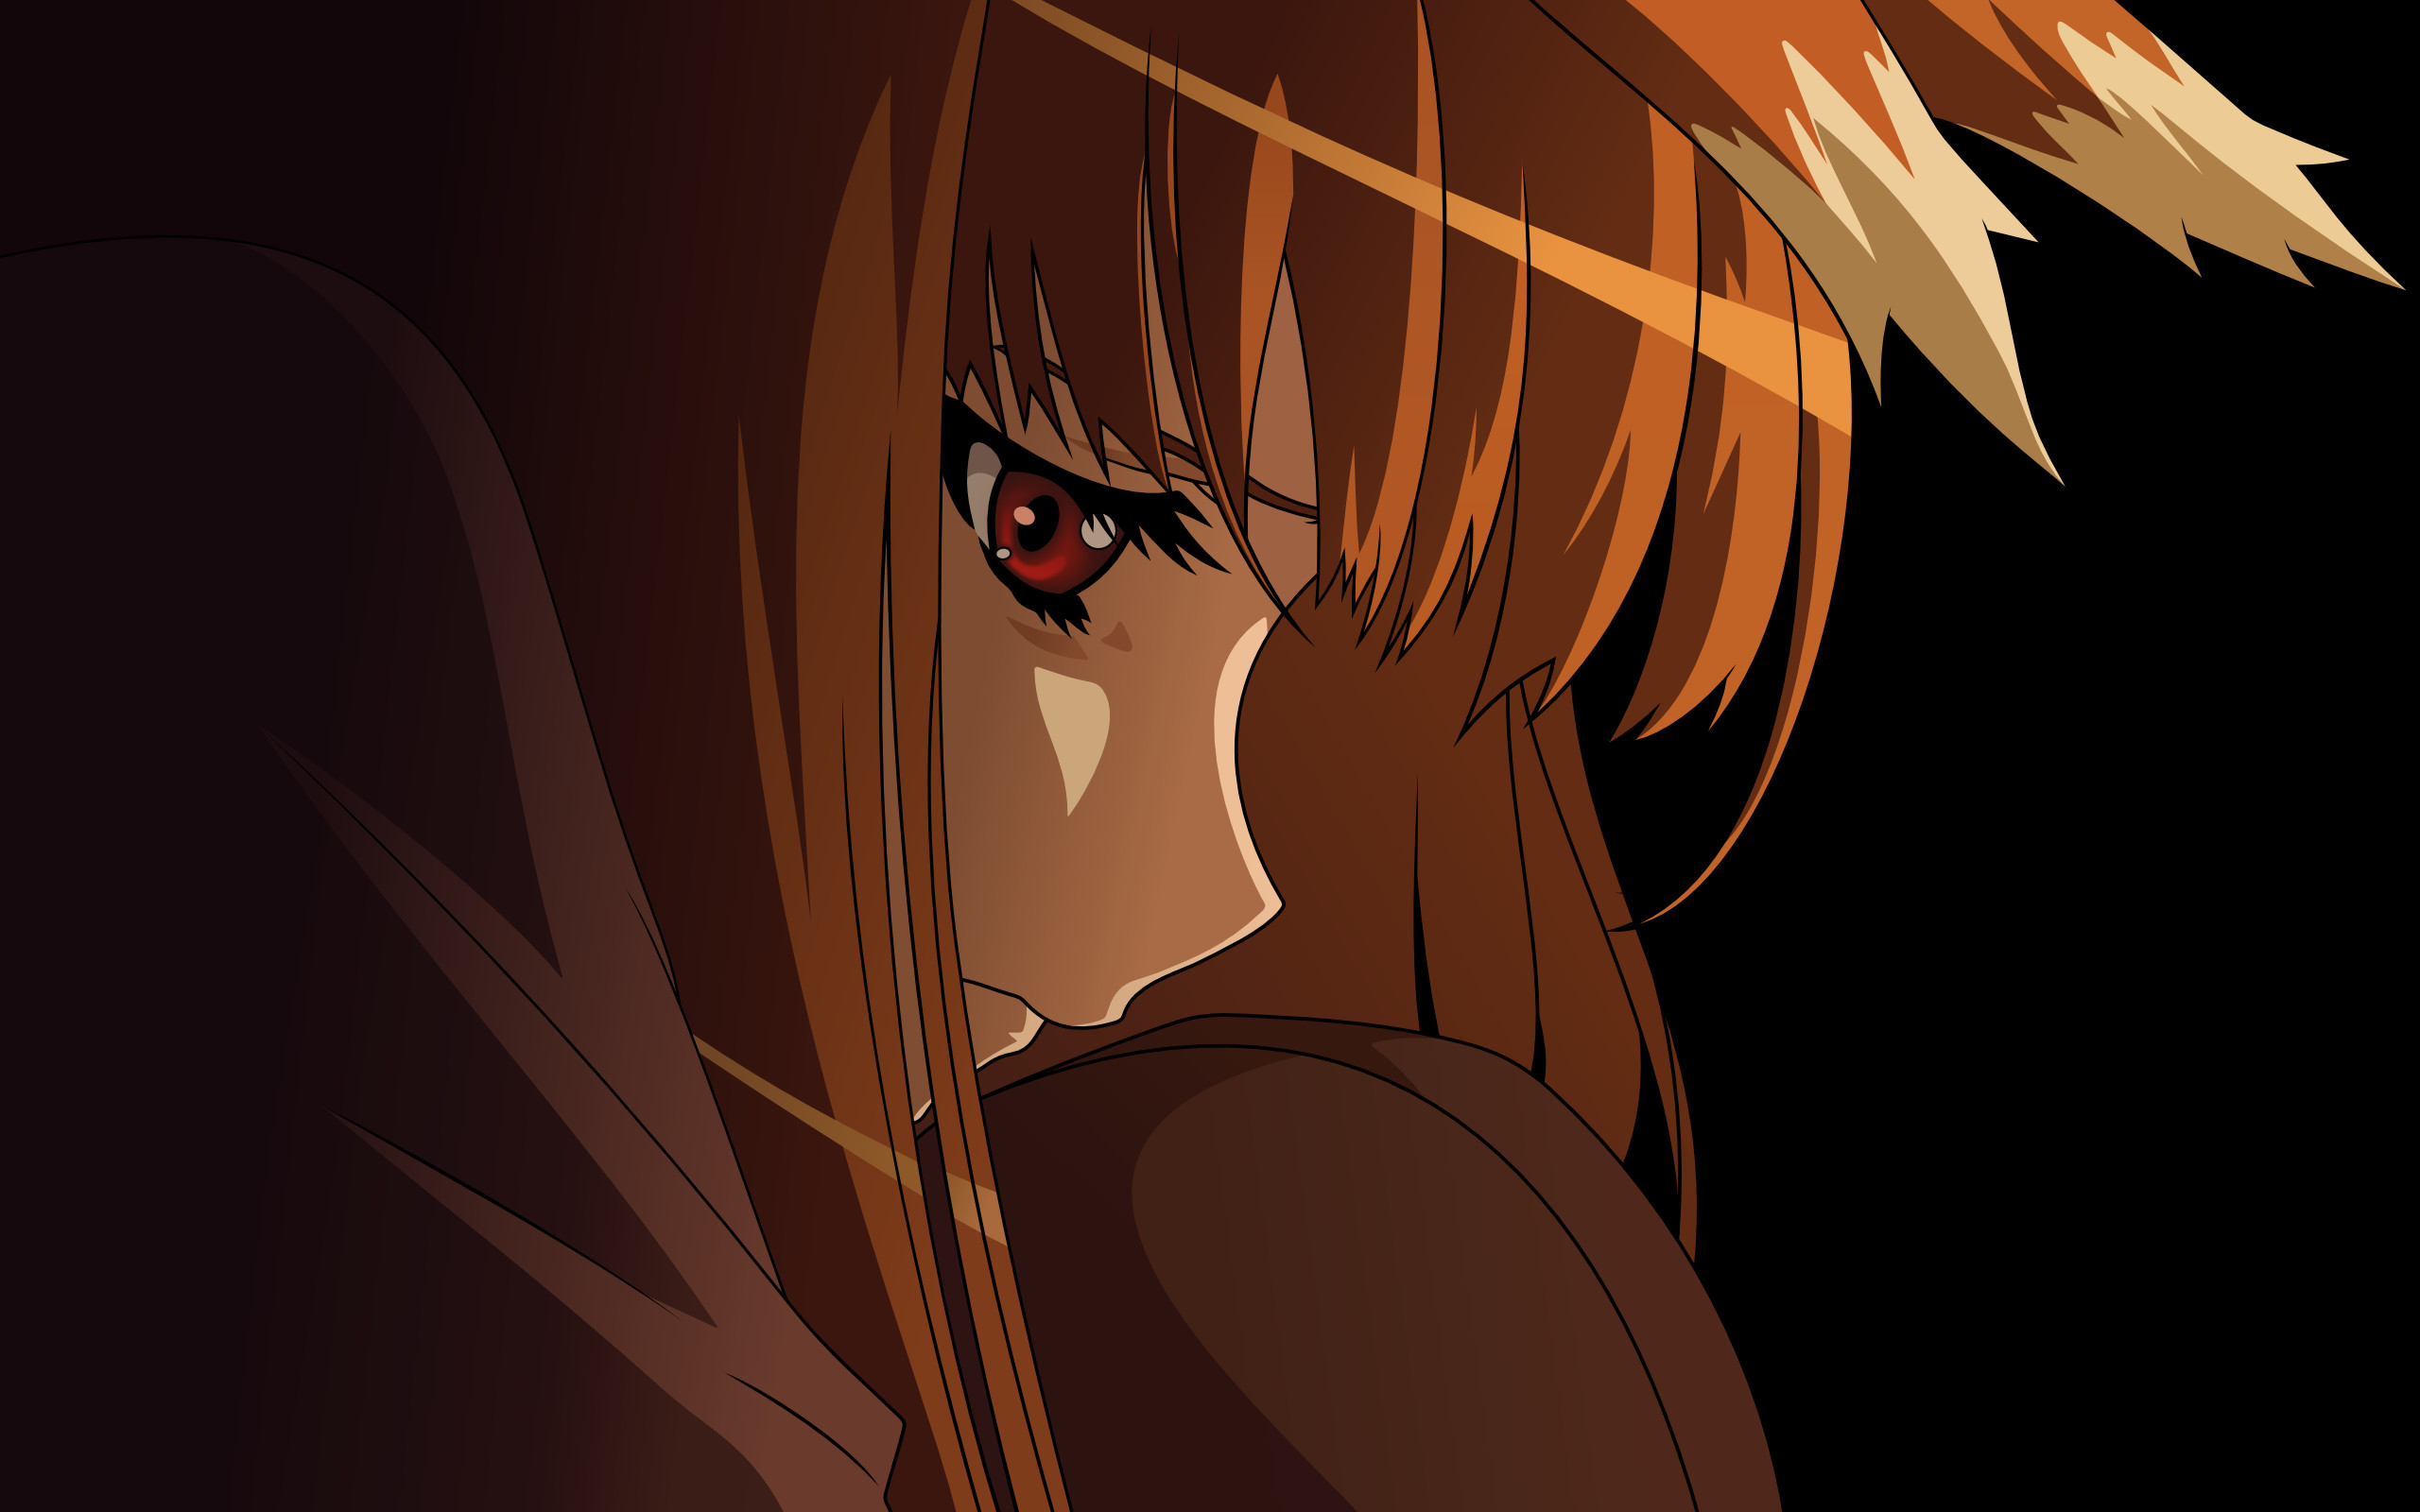 … Holo – Spice and Wolf